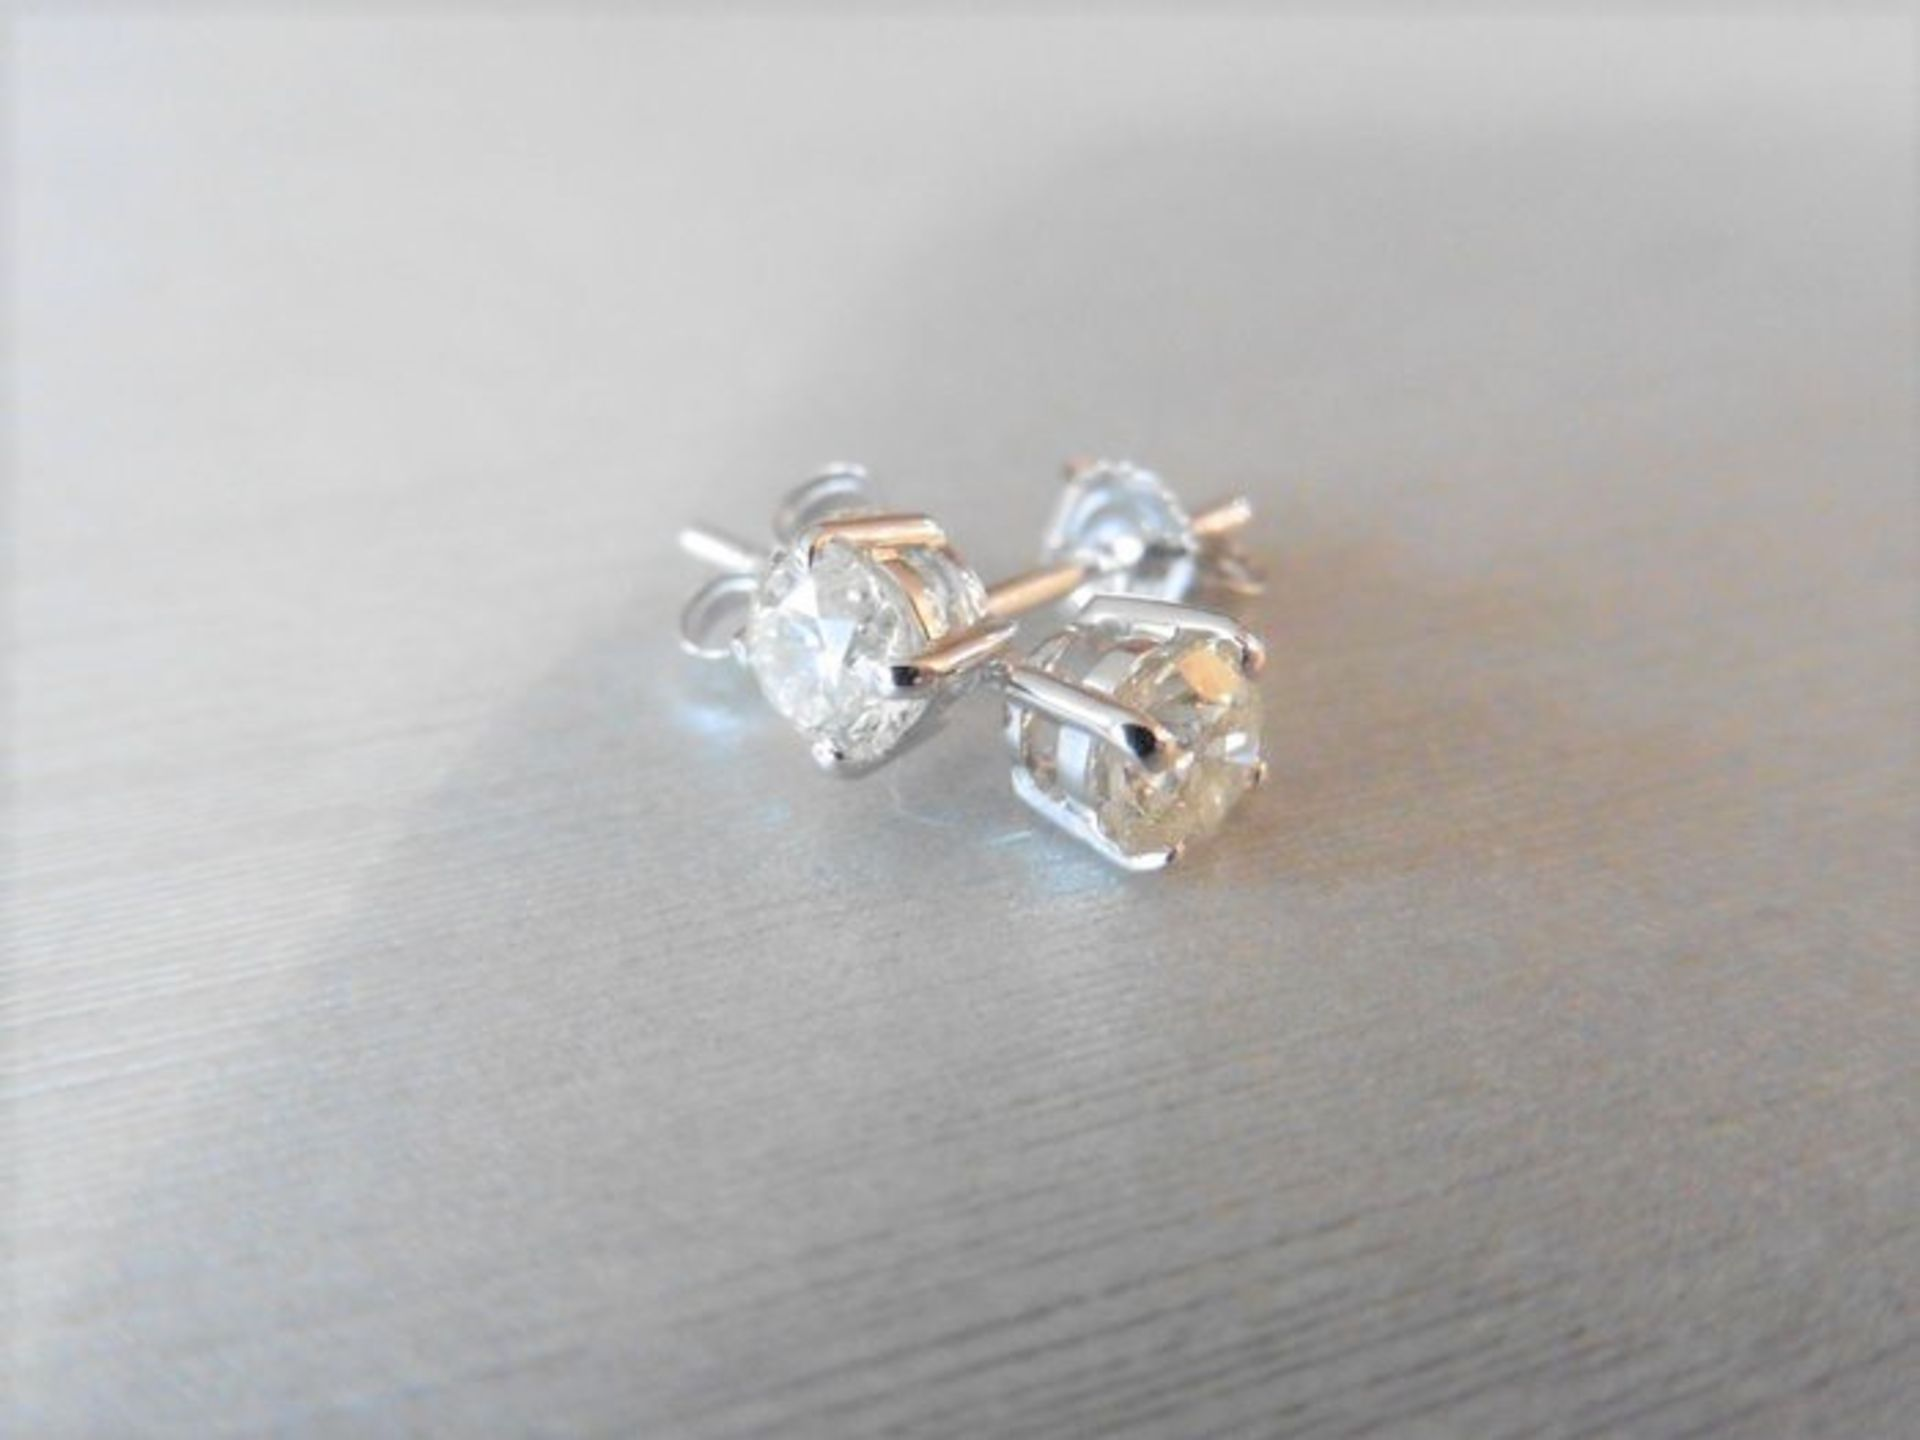 Lot 52 - 1.90Ct Diamond Solitaire Earrings Set With Brilliant Cut Diamonds,